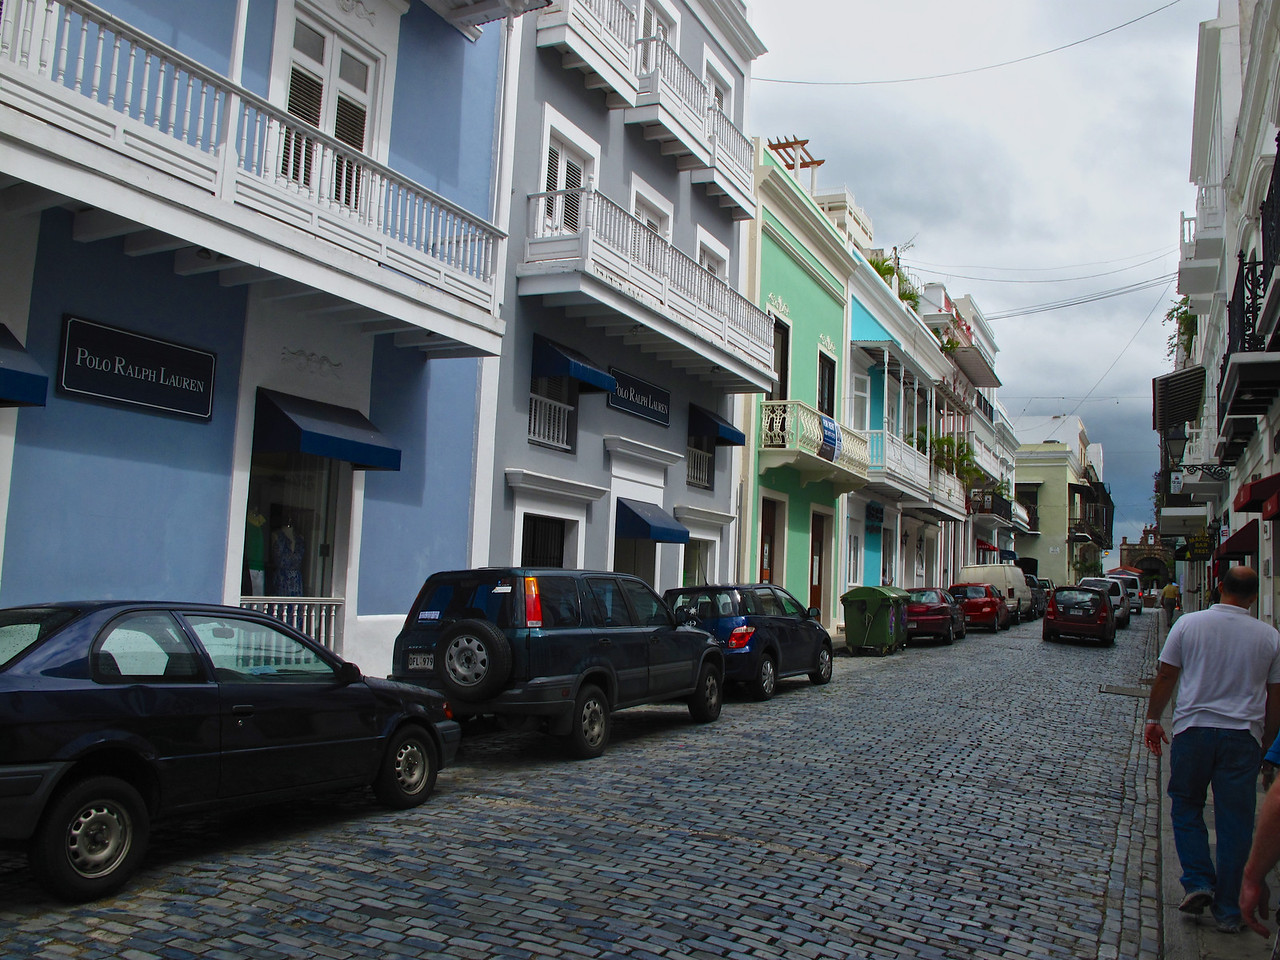 The buildings in Old San Juan are extremely colorful.